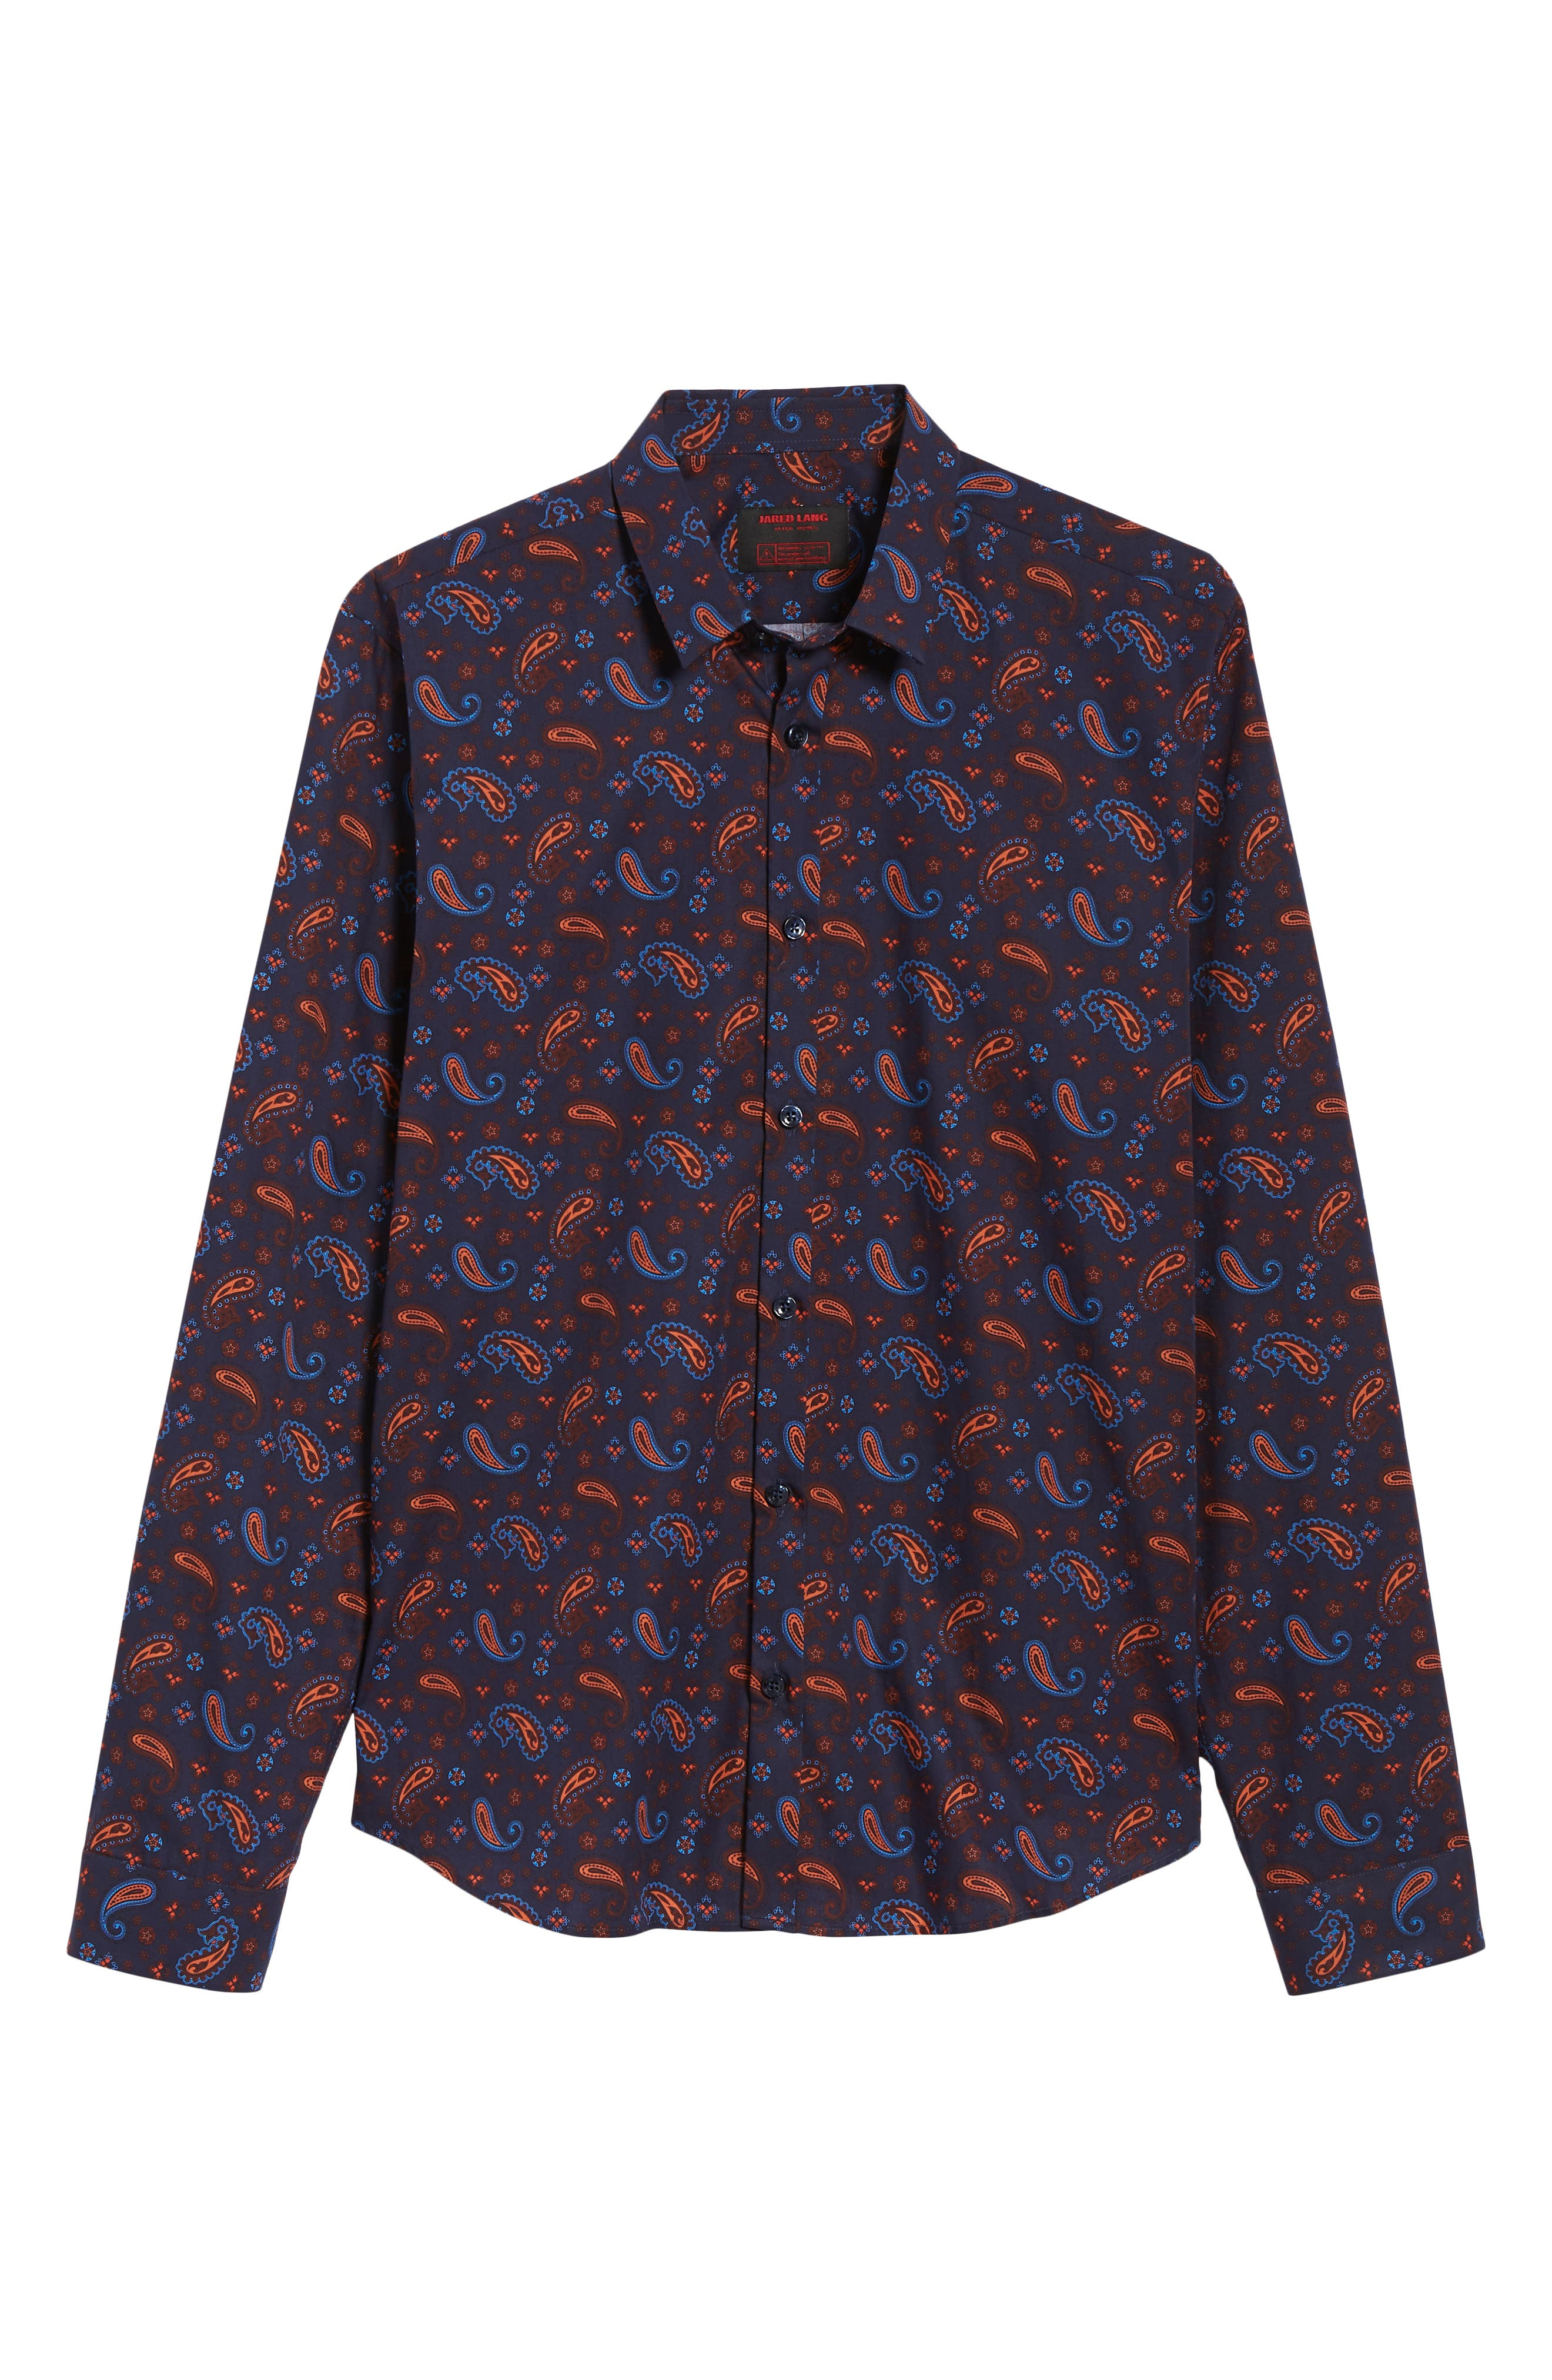 Paisley Print Sport Shirt,                             Alternate thumbnail 5, color,                             Navy Orange Print